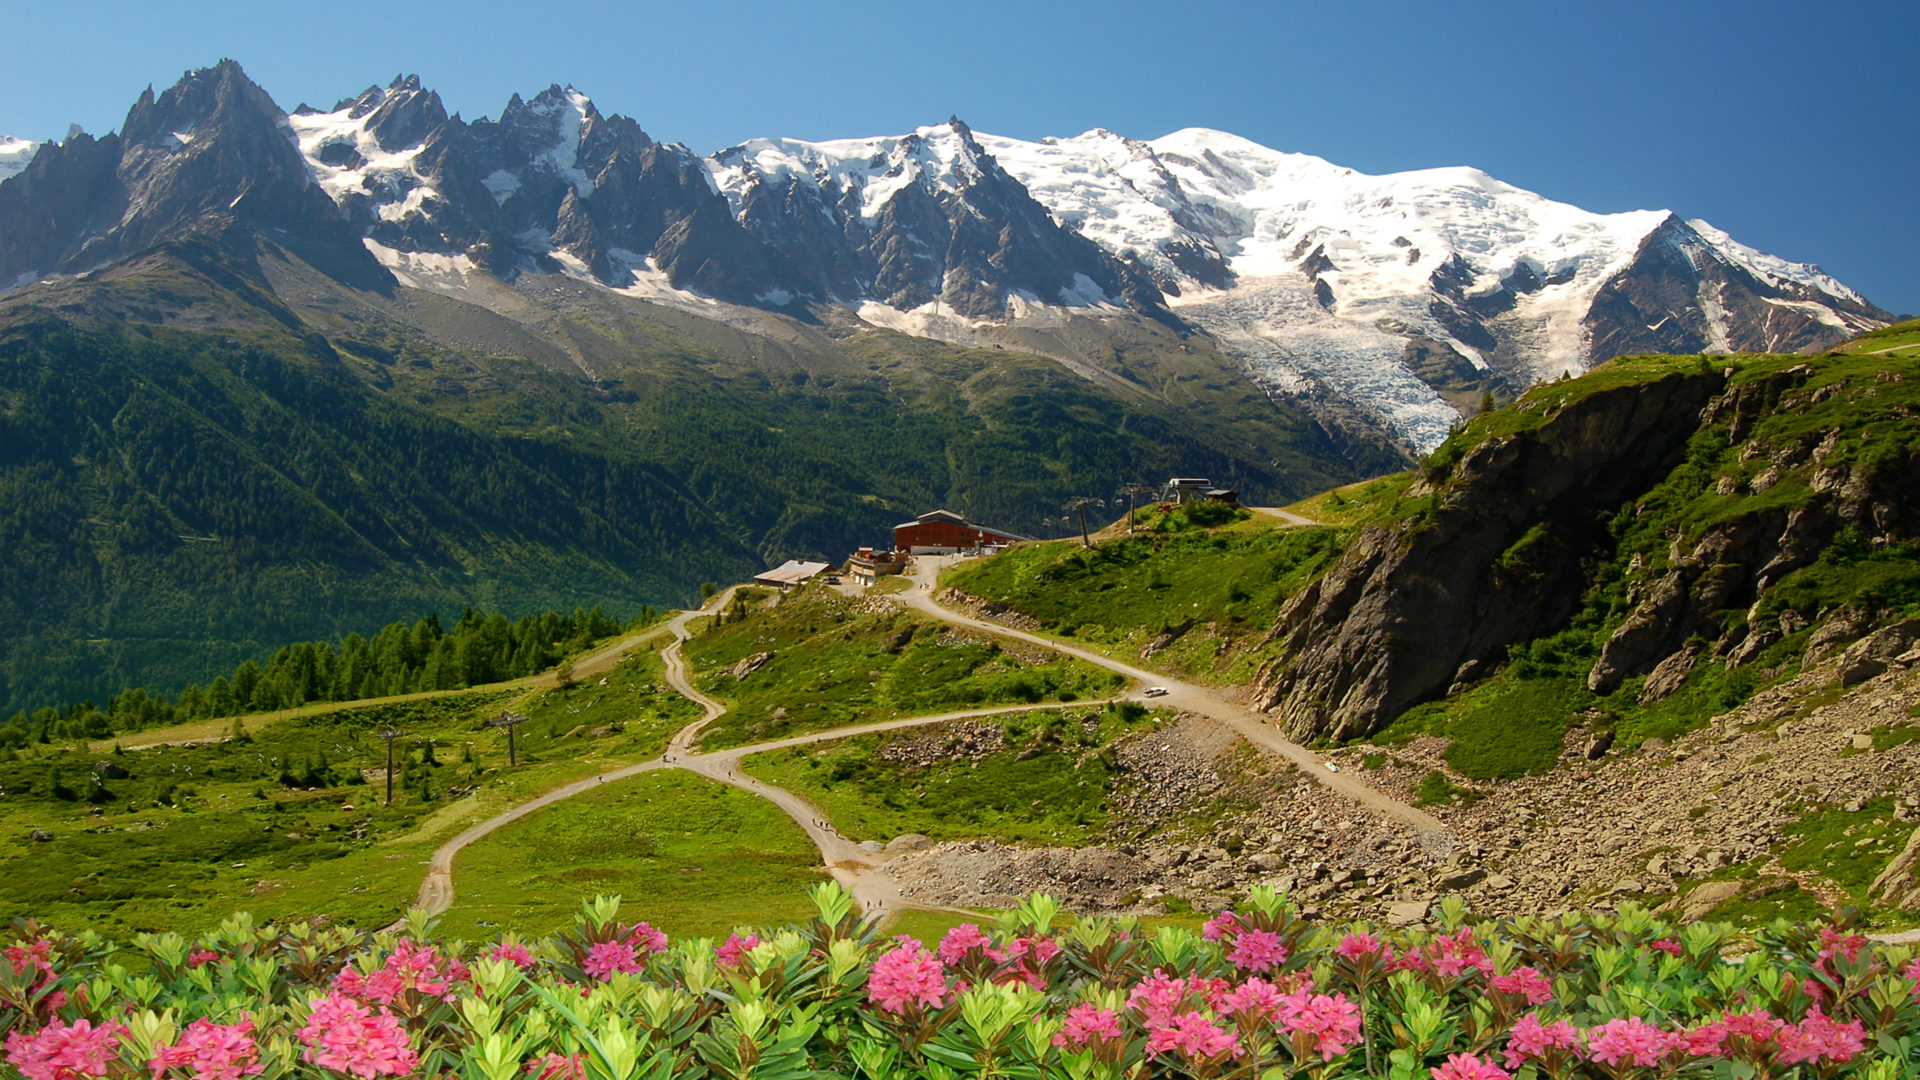 Clear Wallpaper Iphone X Mont Blanc Glacier Flowers Snow Mountain Lodge Time